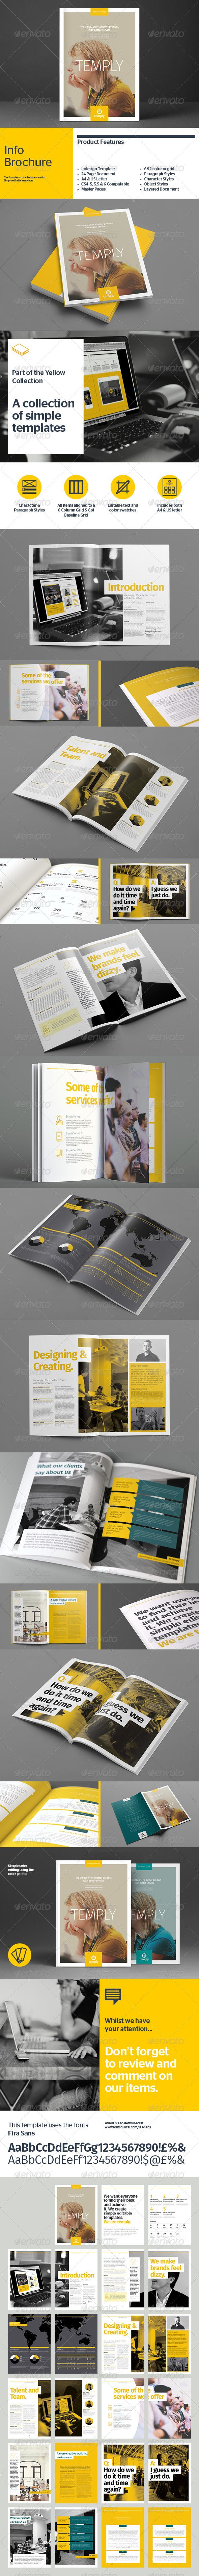 The InfoBrochure template is a brochure with space to give a little extra information about your company, some facts and figures and maybe some infographics too.